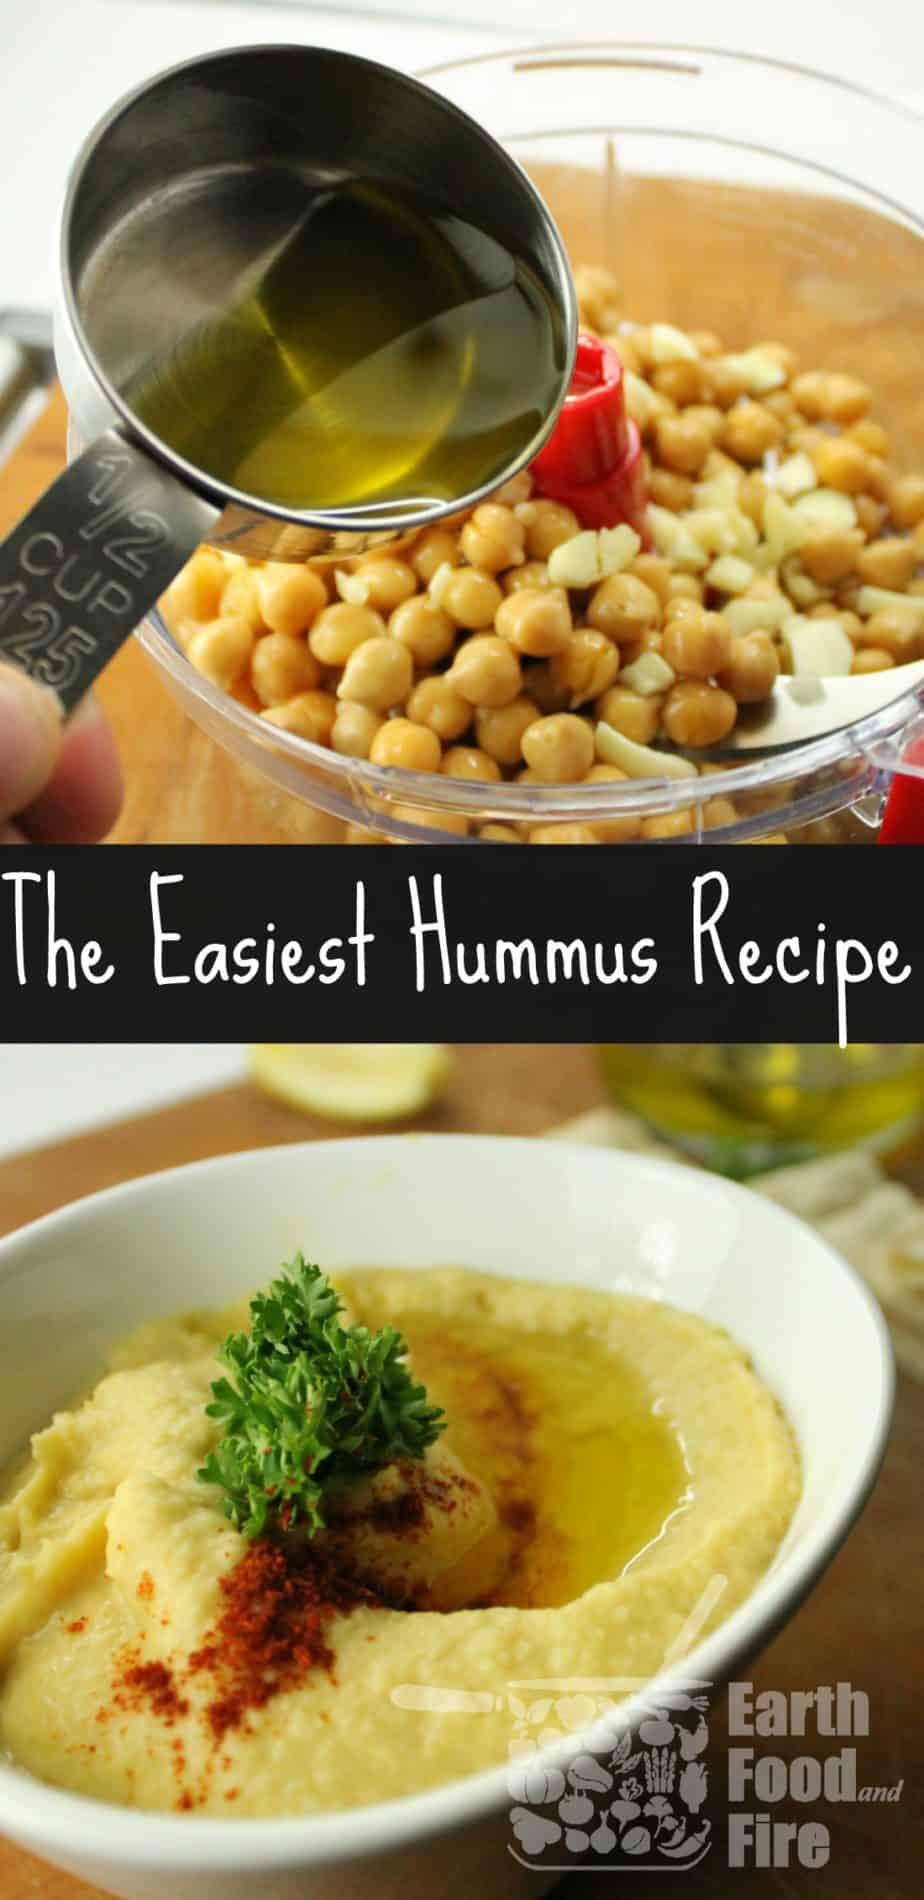 The simplest 5 ingredient hummus recipe. Easily modified to suit your own tastes & great as a dip for crudites platters.